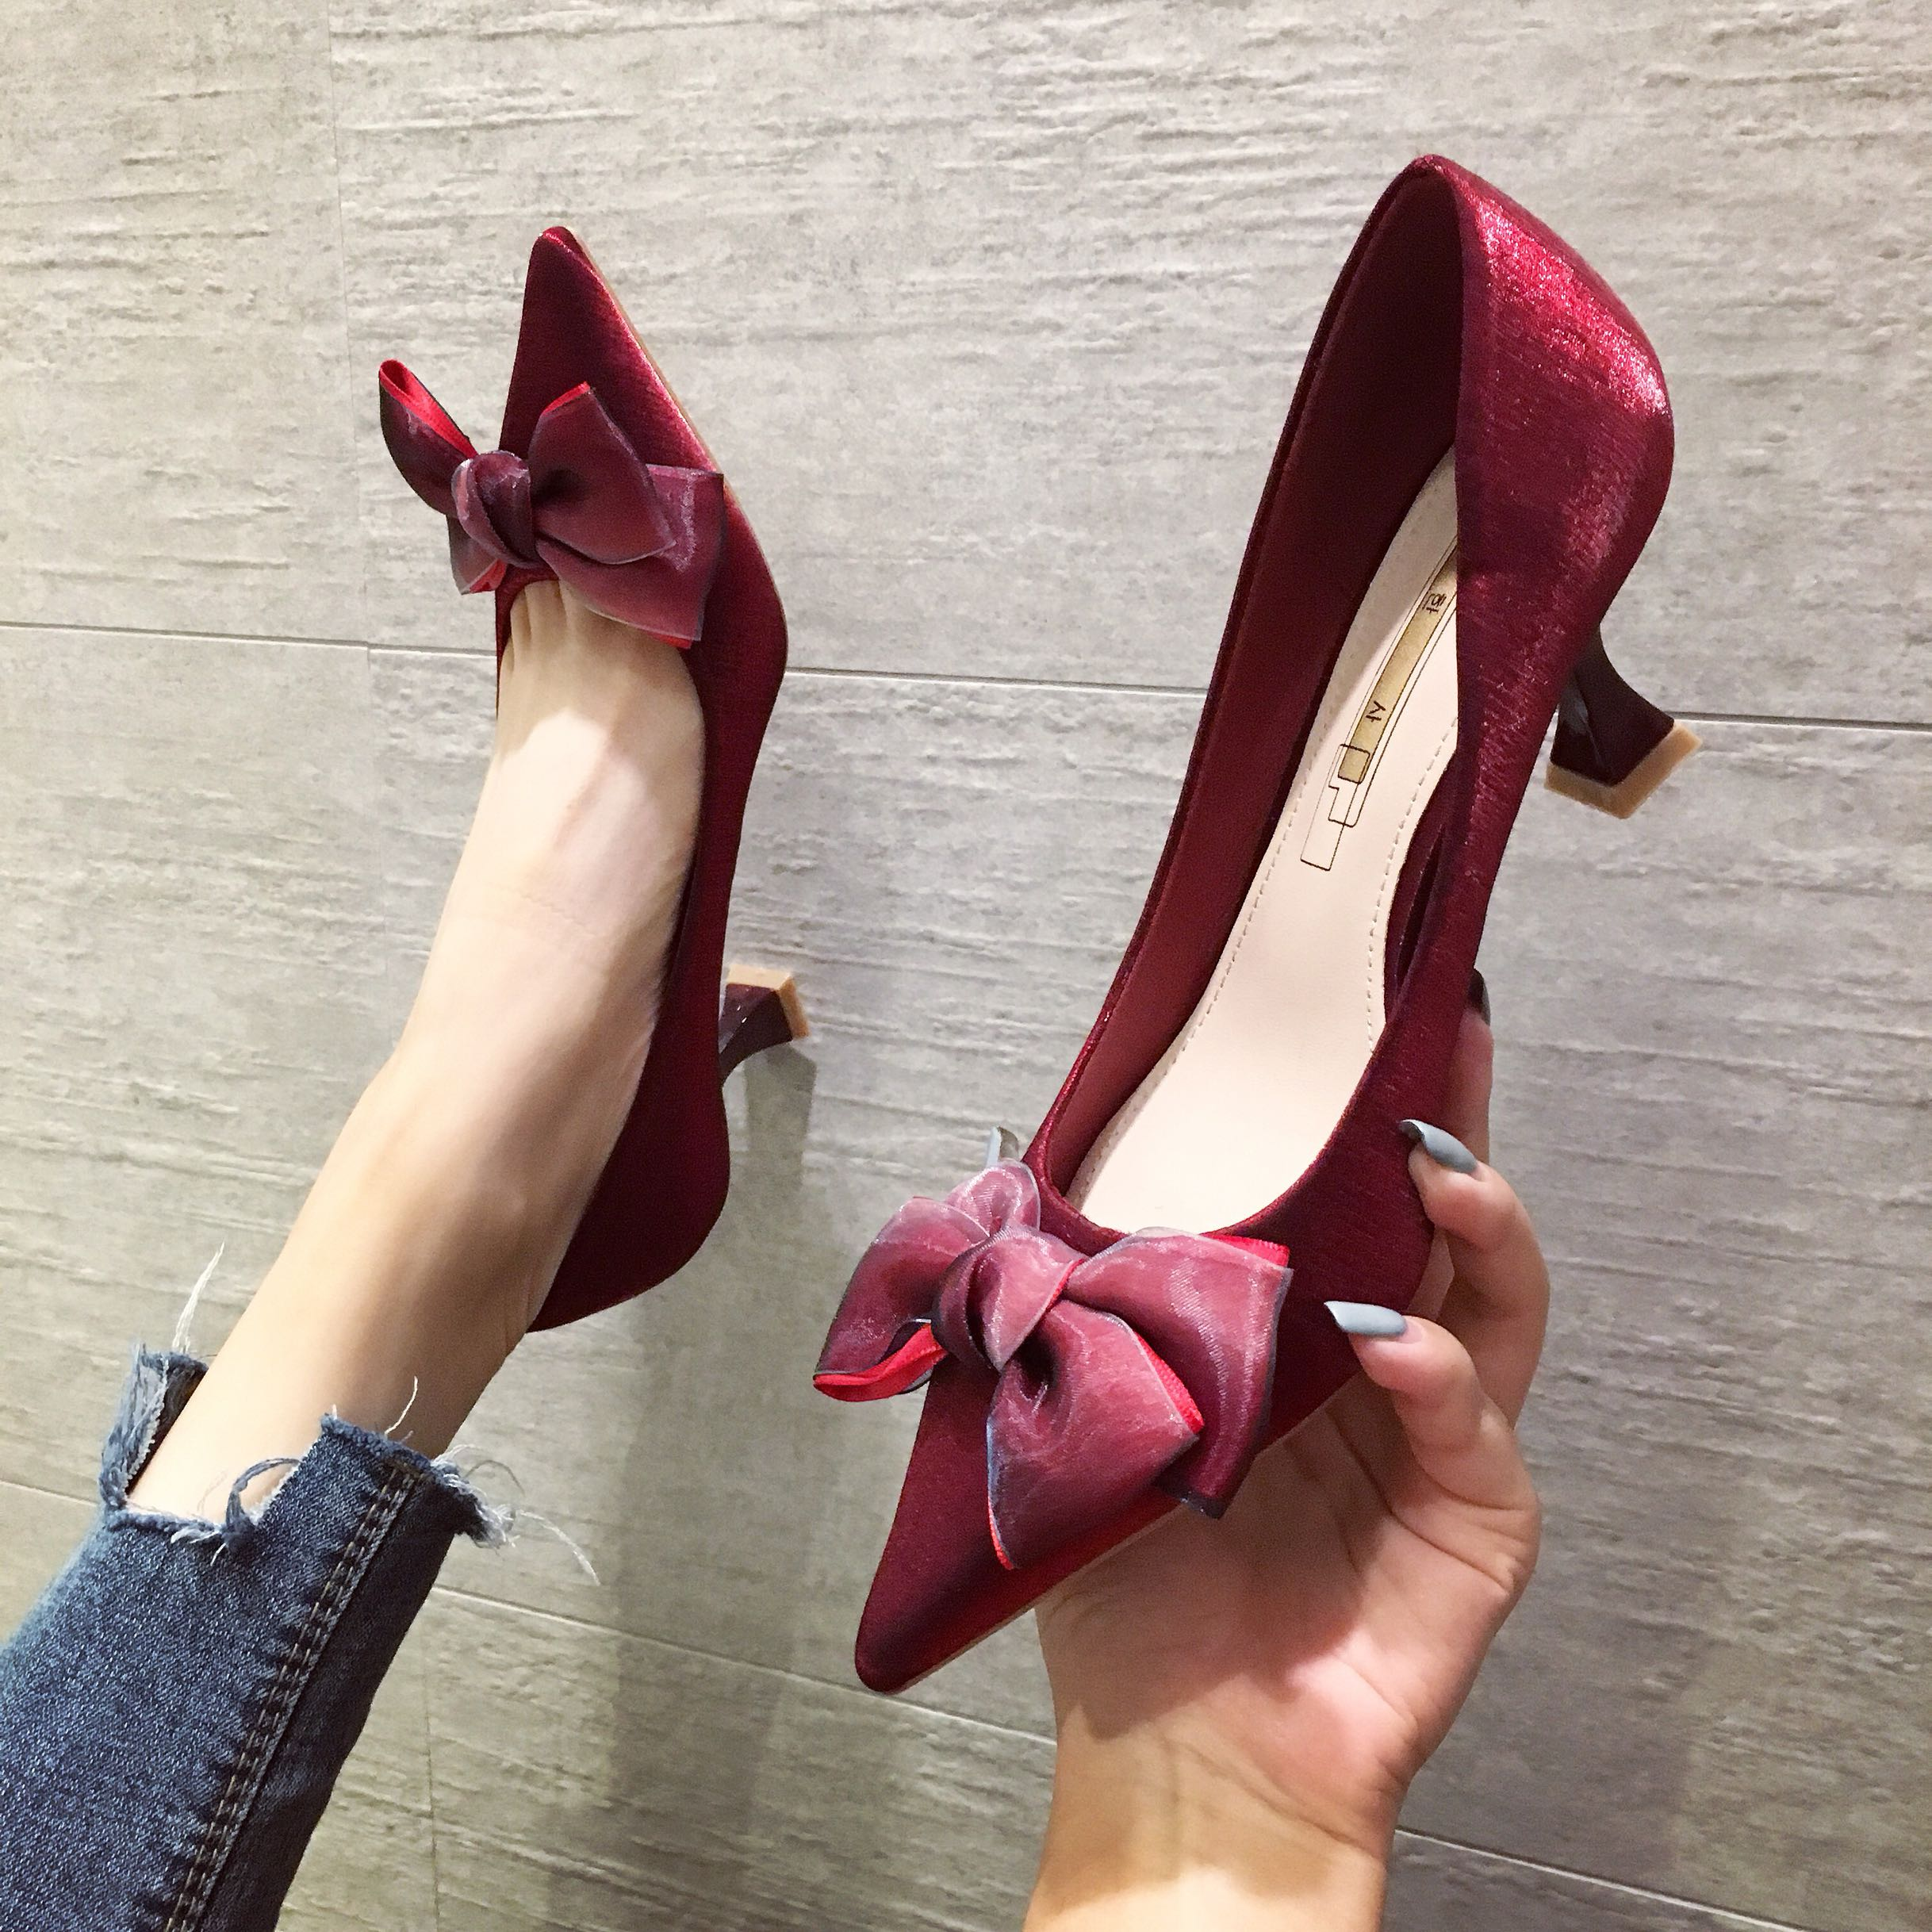 Jinhansha high heeled shoes 2019 new versatile autumn and winter slim heel single shoes womens 5cm cat heel wedding shoes